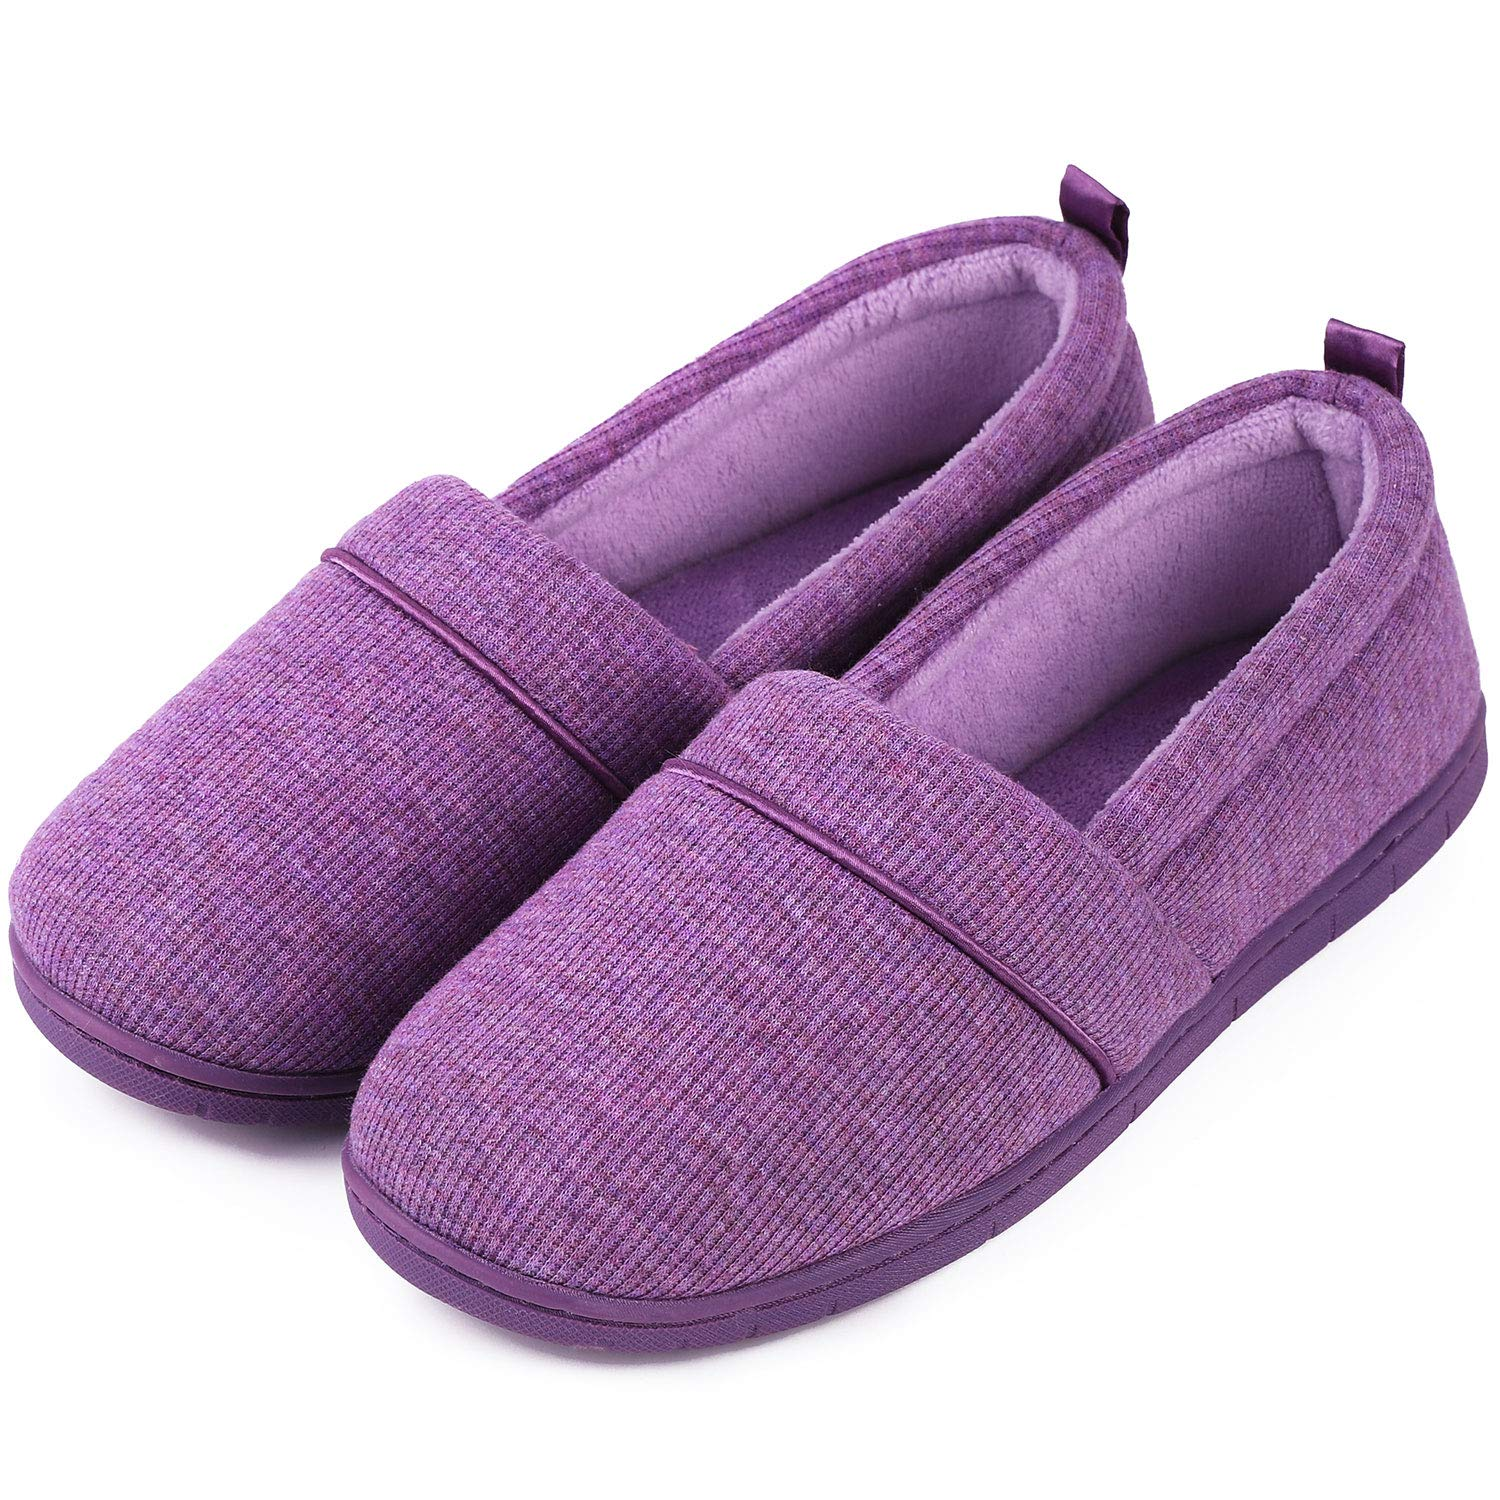 Women's Comfort Cotton Knit Memory Foam House Shoes Light Weight Terry Cloth Loafer Slippers w Anti Skid Rubber Sole